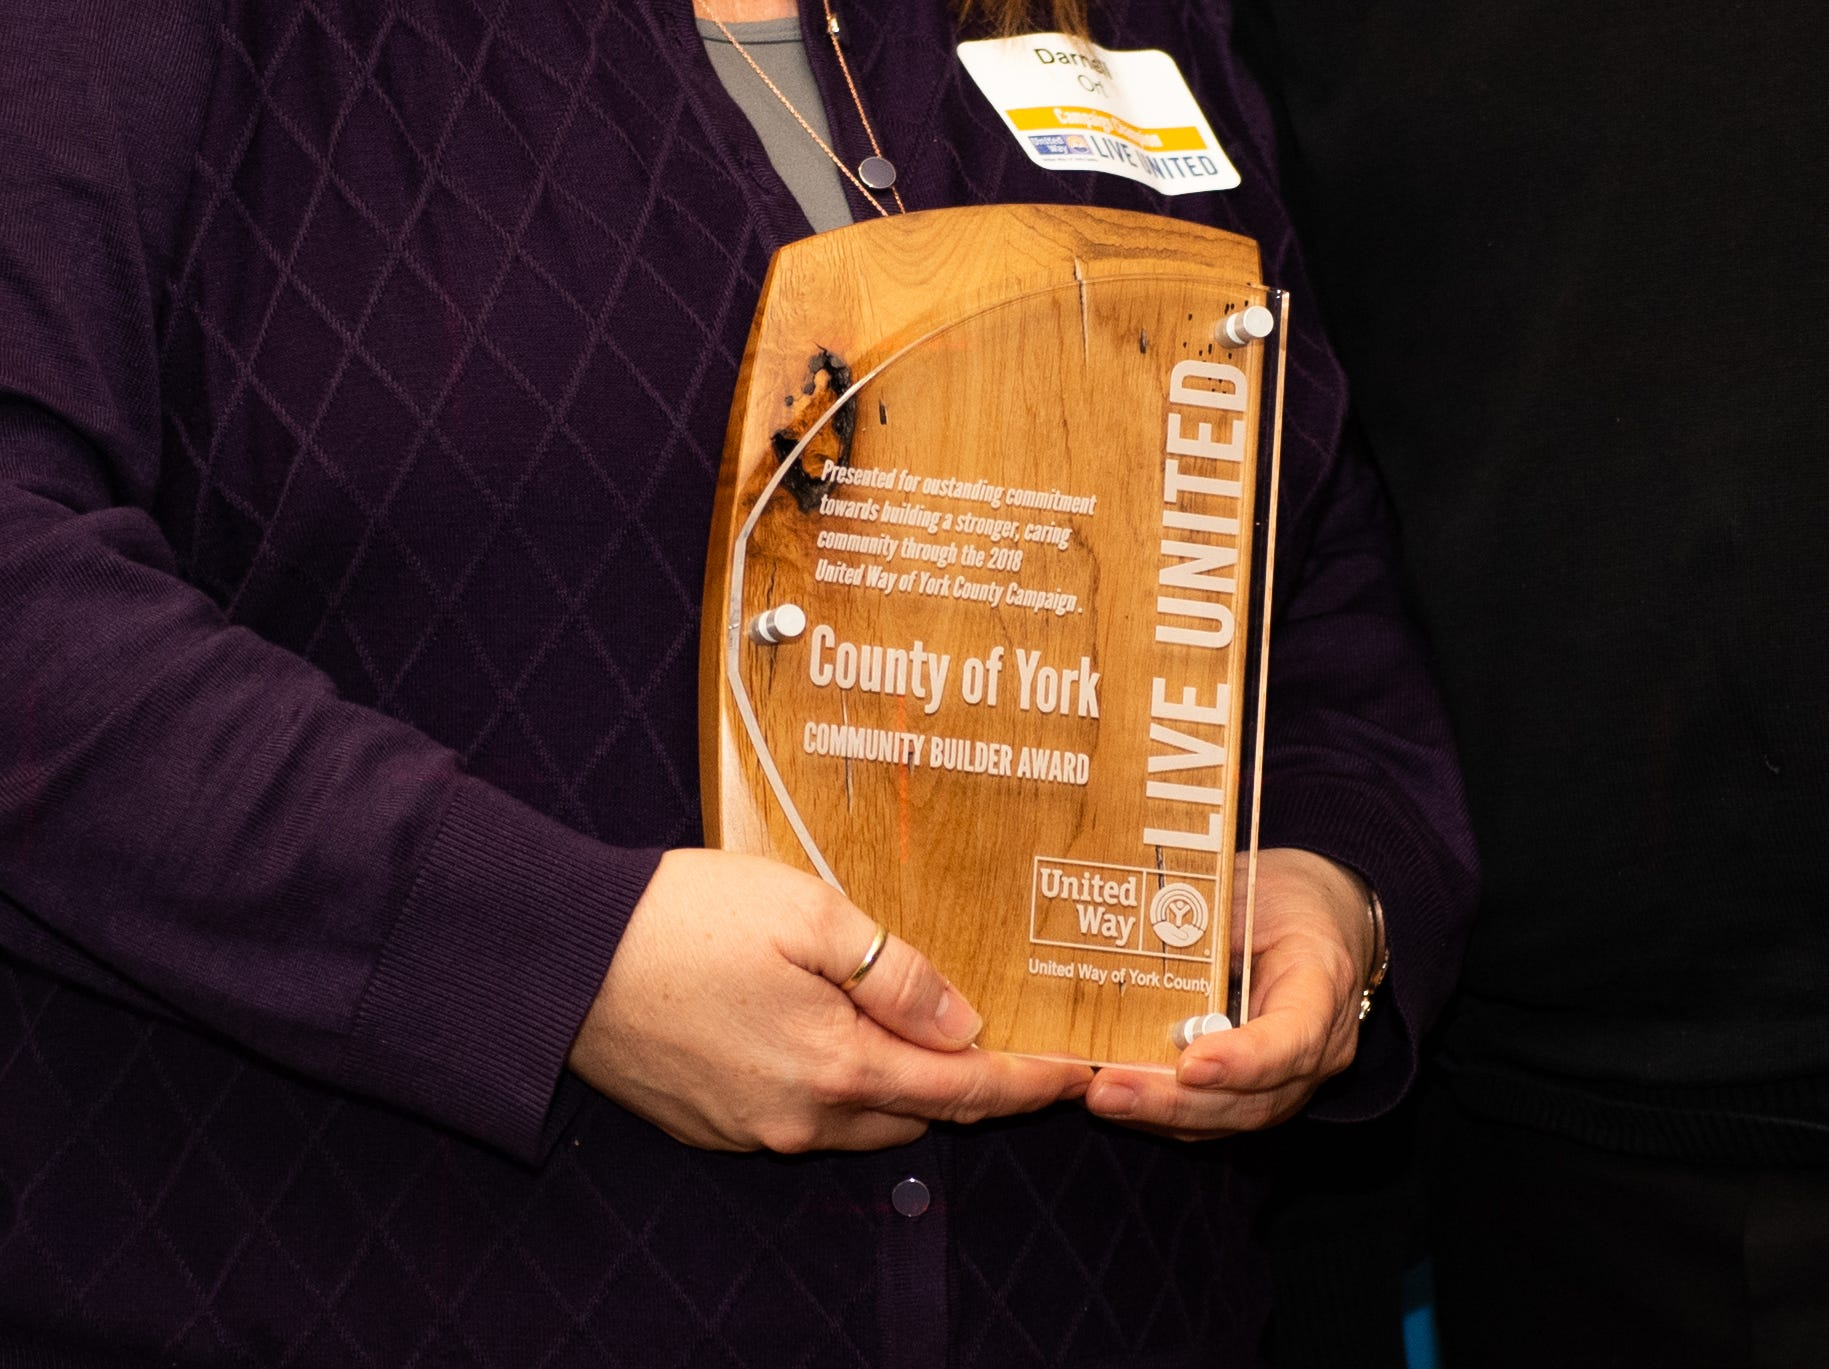 Each company is awarded wooded plaque thanking them for their outstanding commitment, February 7, 2019.